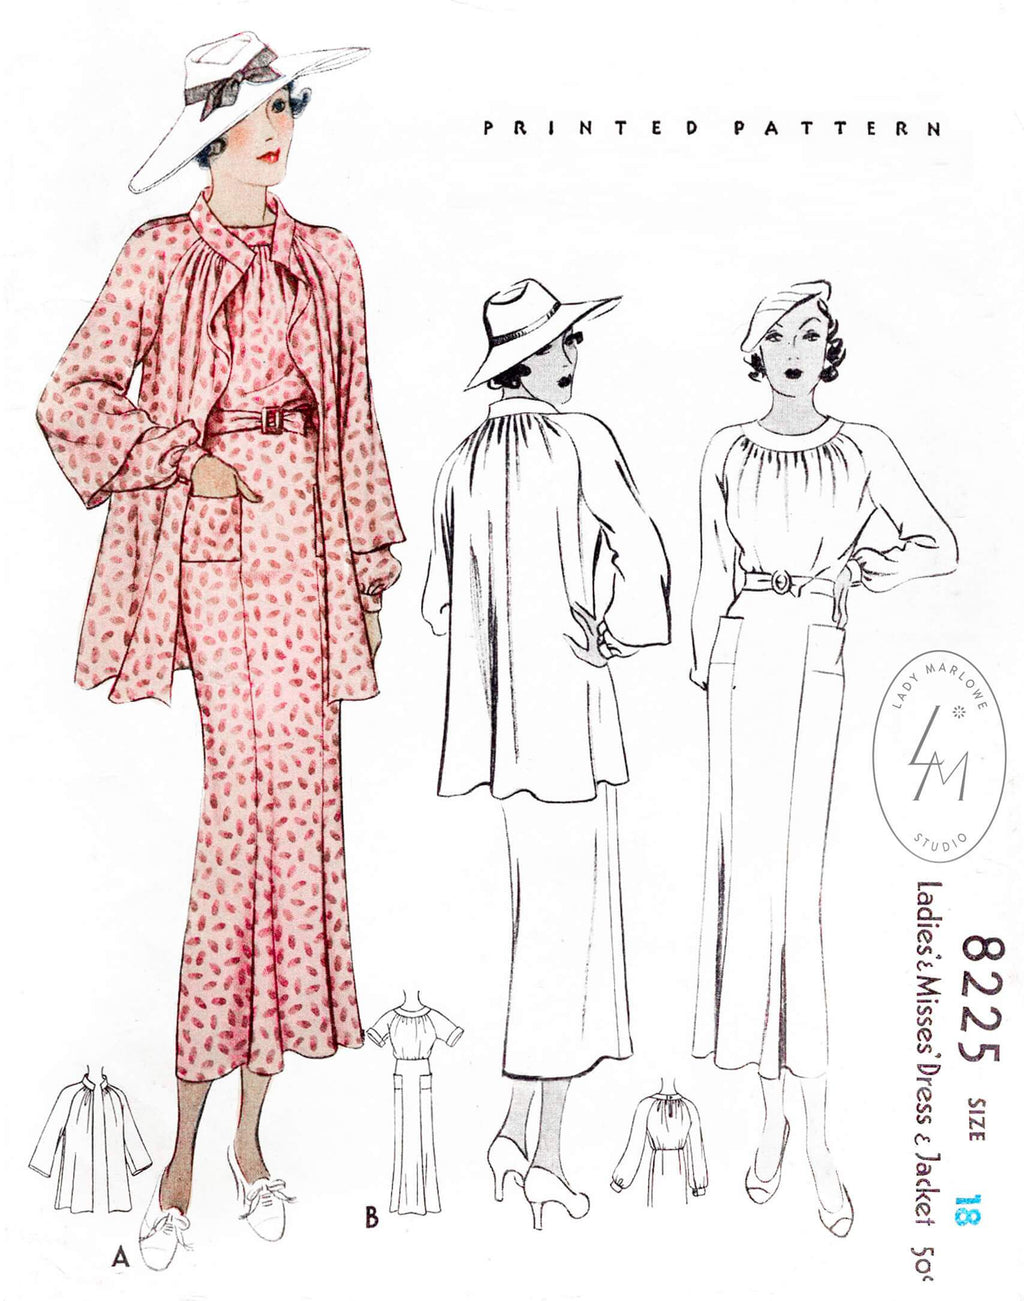 McCall 8225 1930s 1935 dress and jacket raglan sleeves vintage sewing pattern reproduction